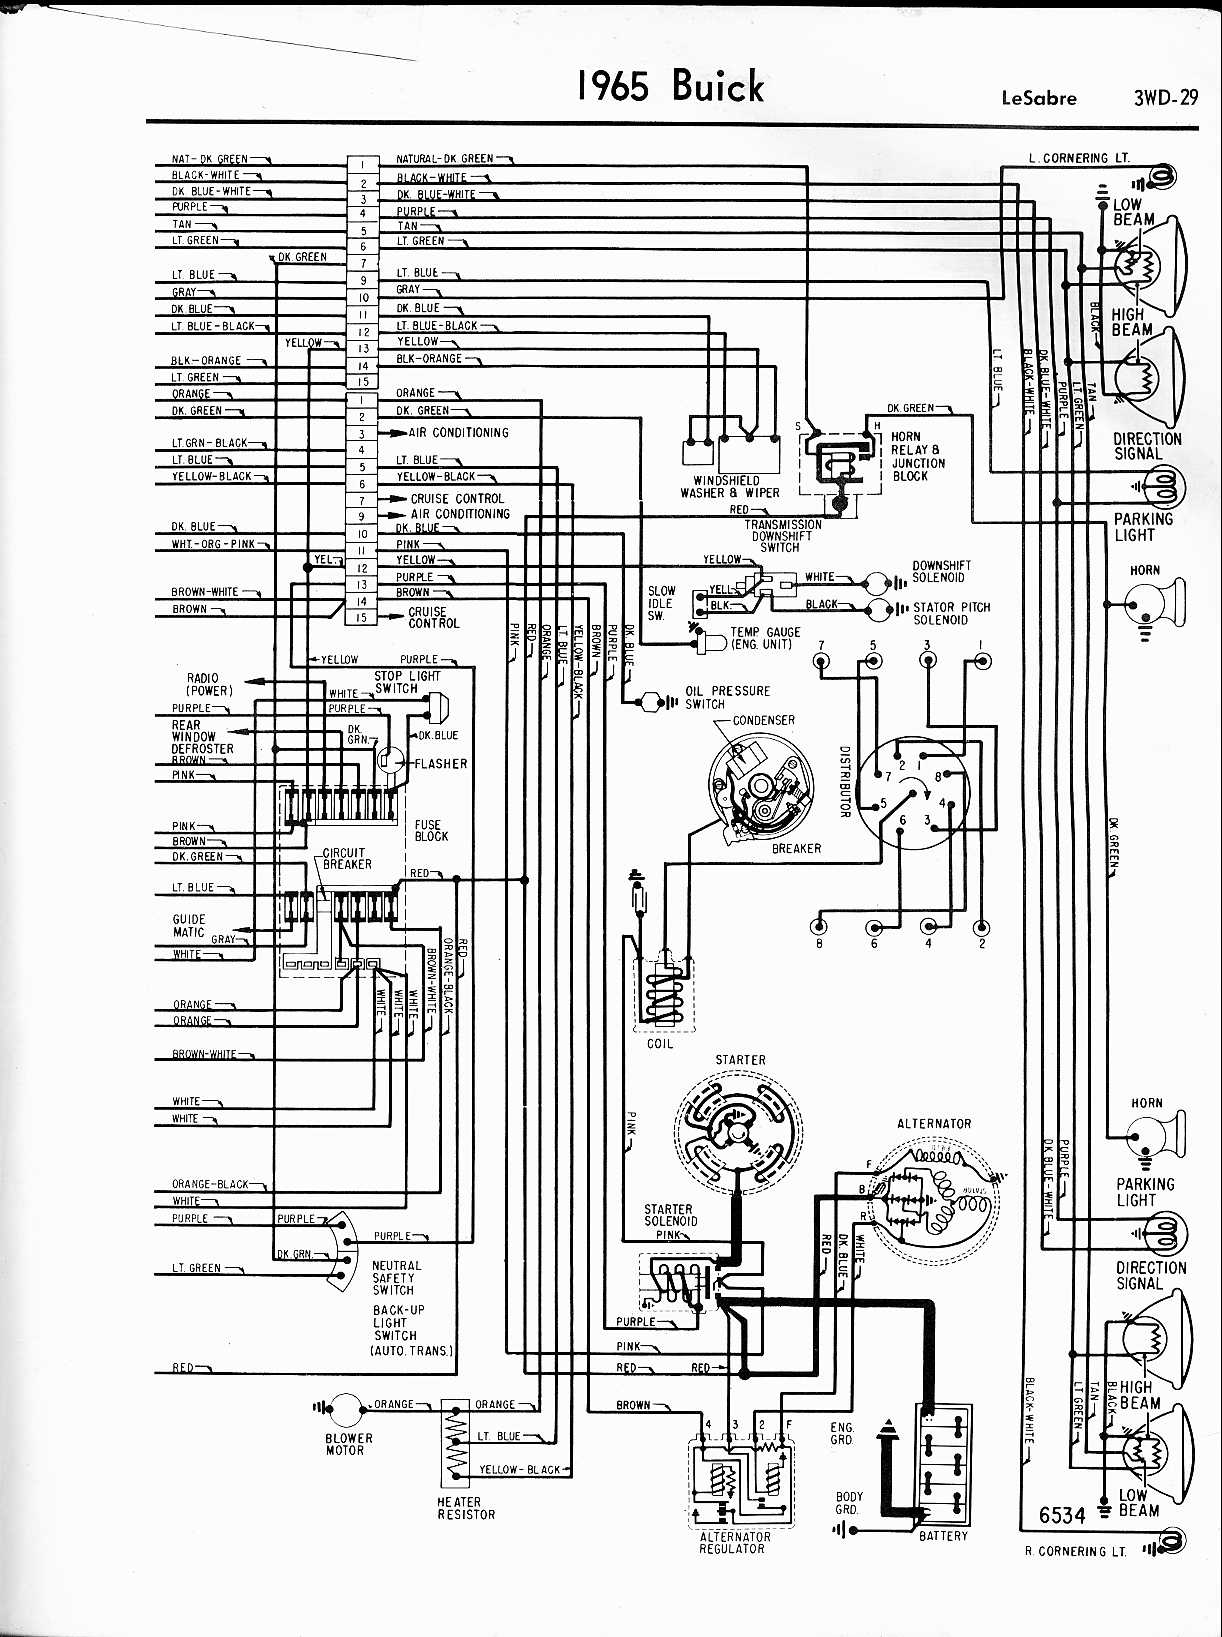 1995 Lesabre Wiring Diagram Layout Diagrams 1967 Buick Free Data Schematics U2022 Rh Xrkarting Com Radio